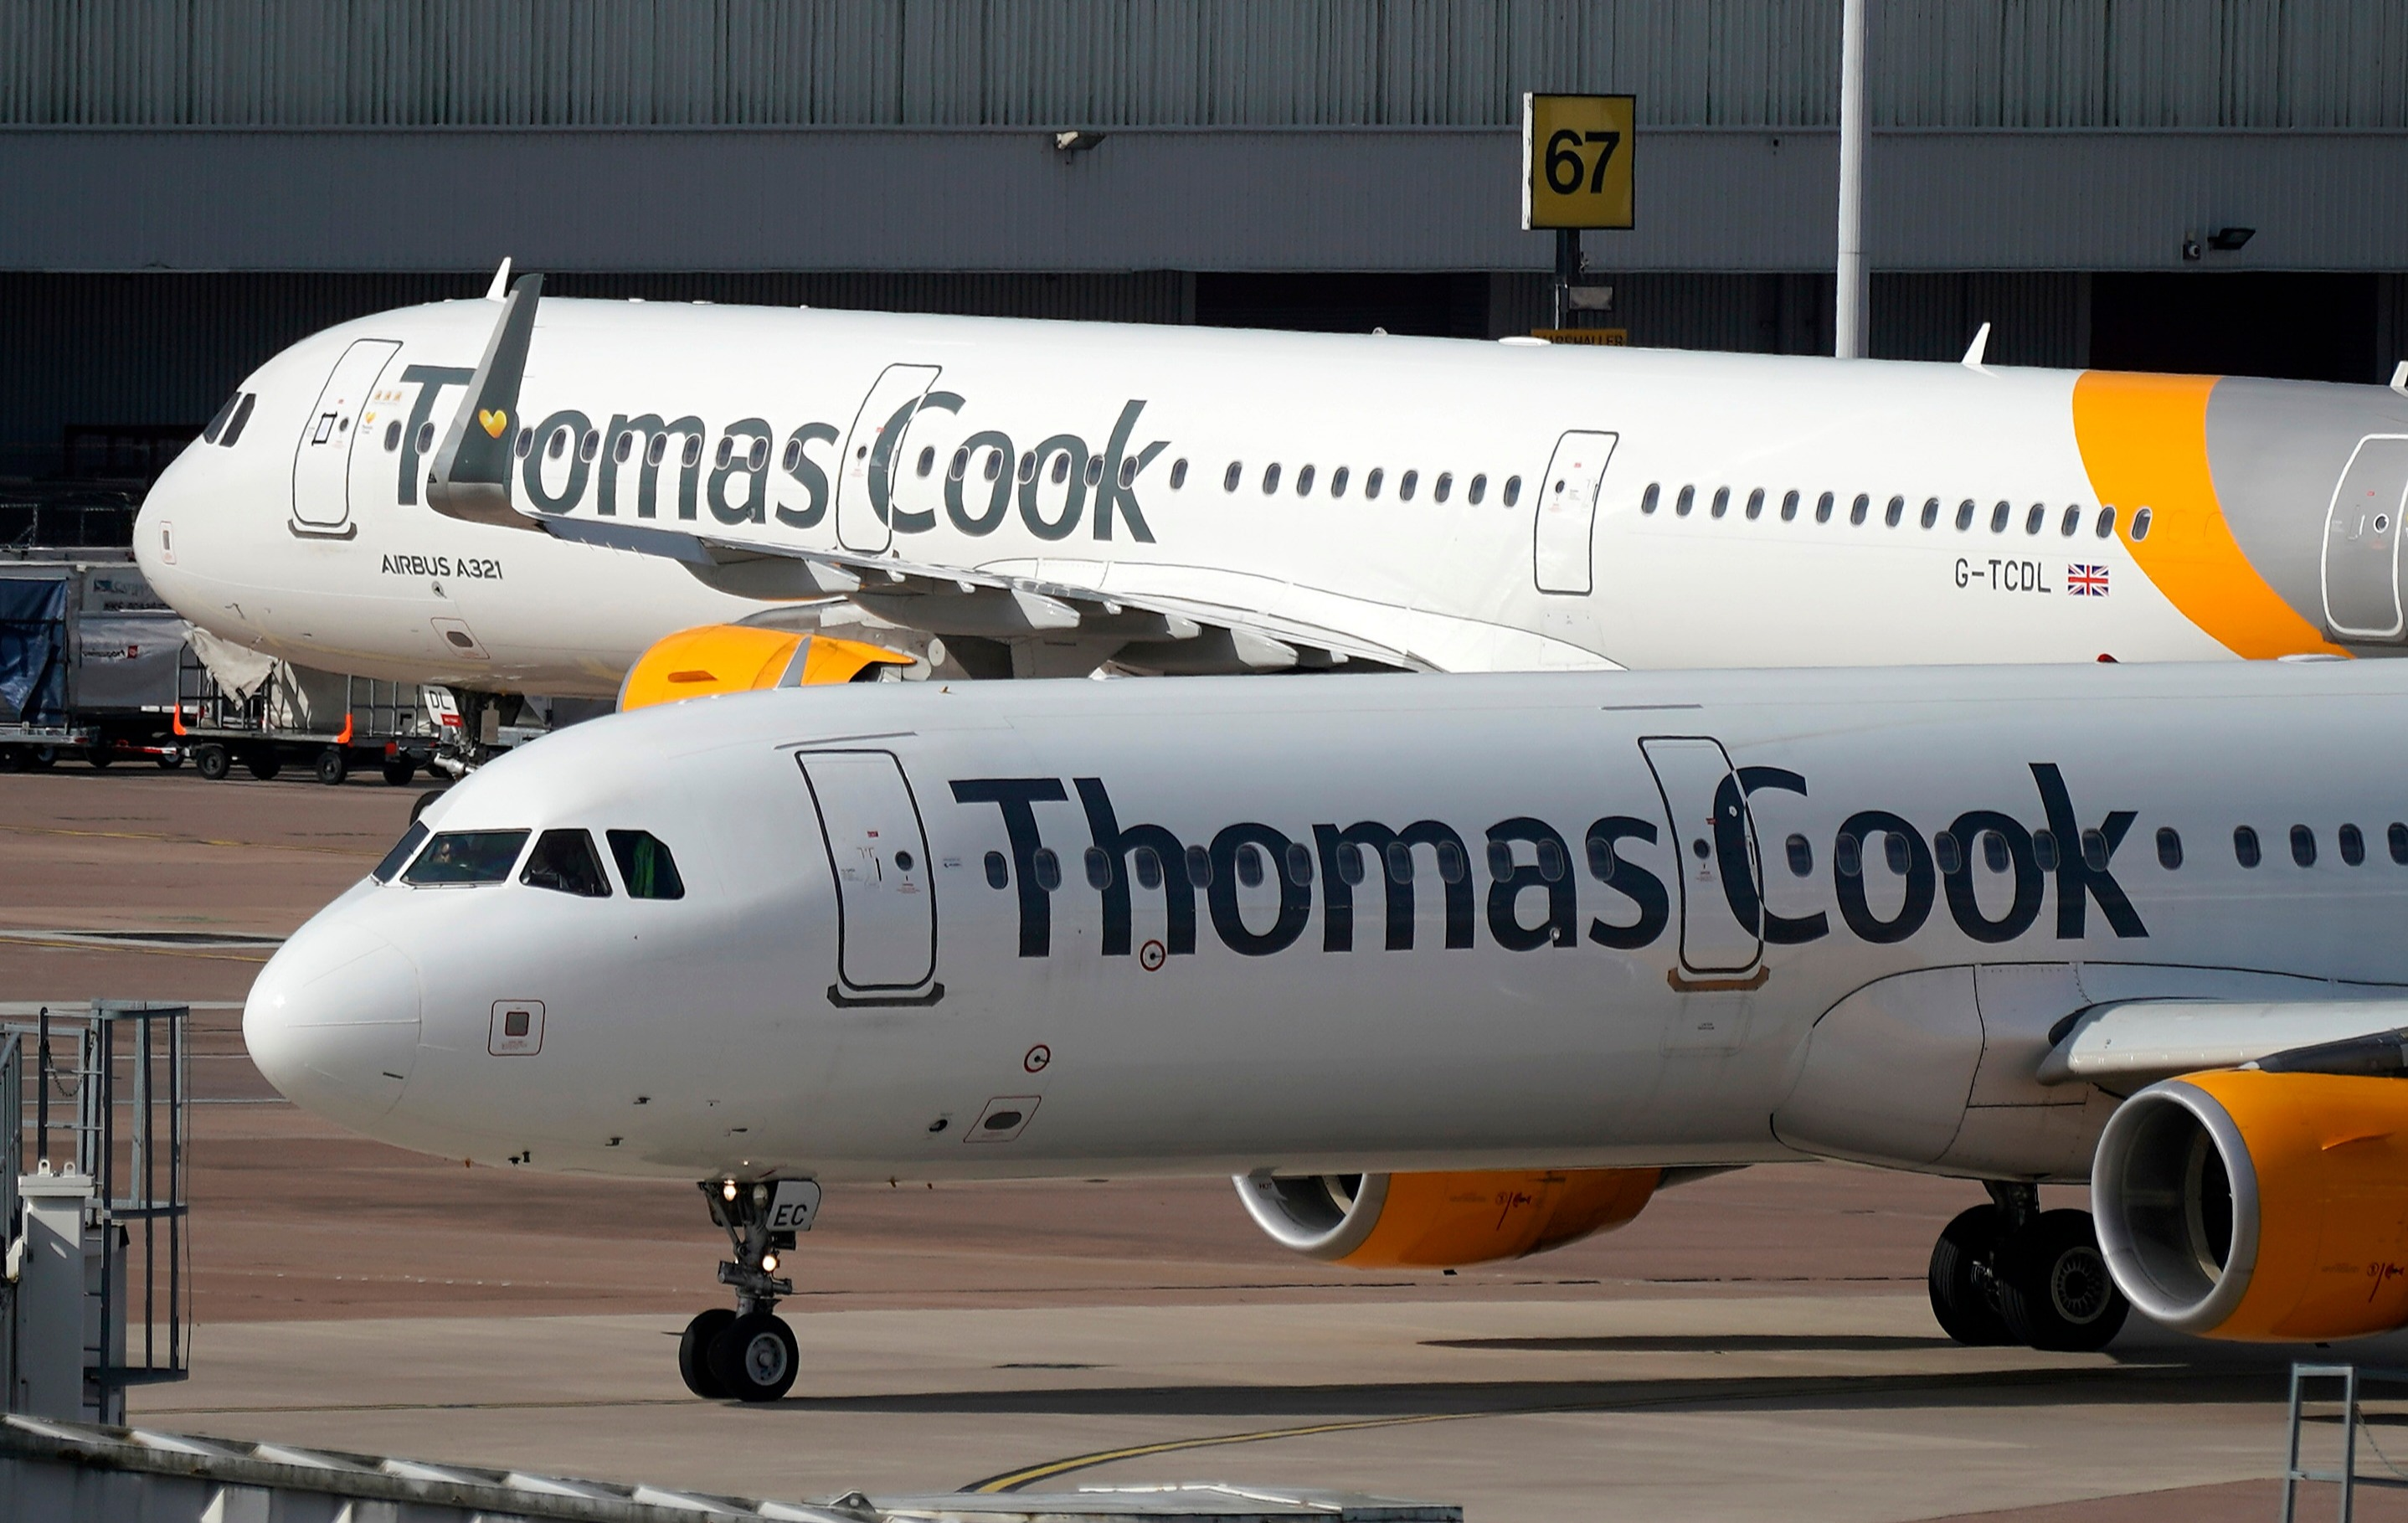 Thomas Cook has relaunched their website, with holidays already available to book